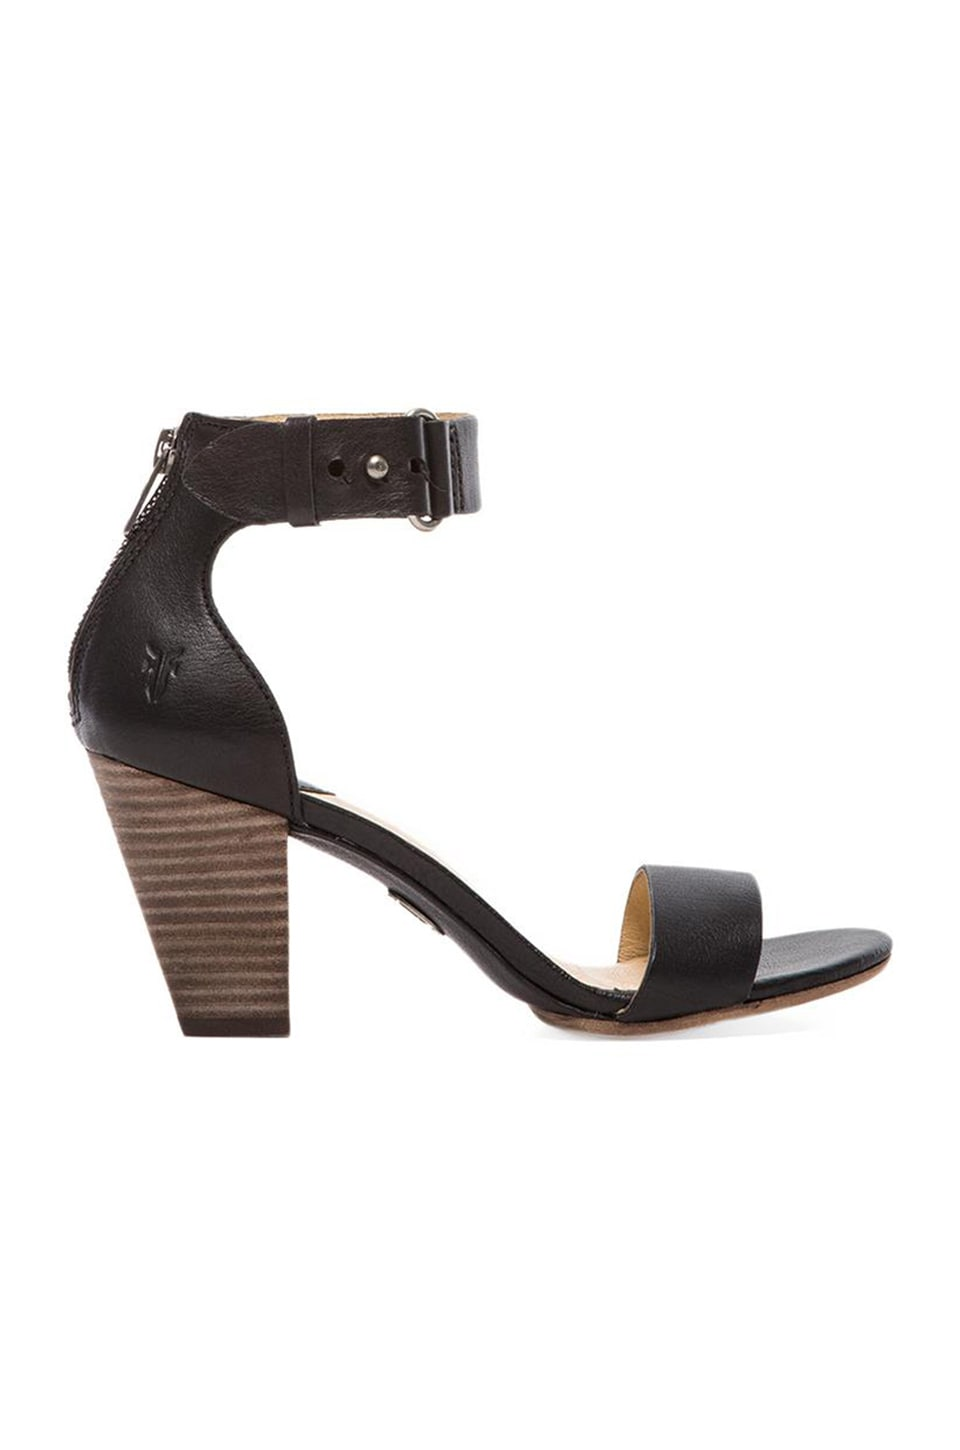 Frye Skye Belt Sandal in Black